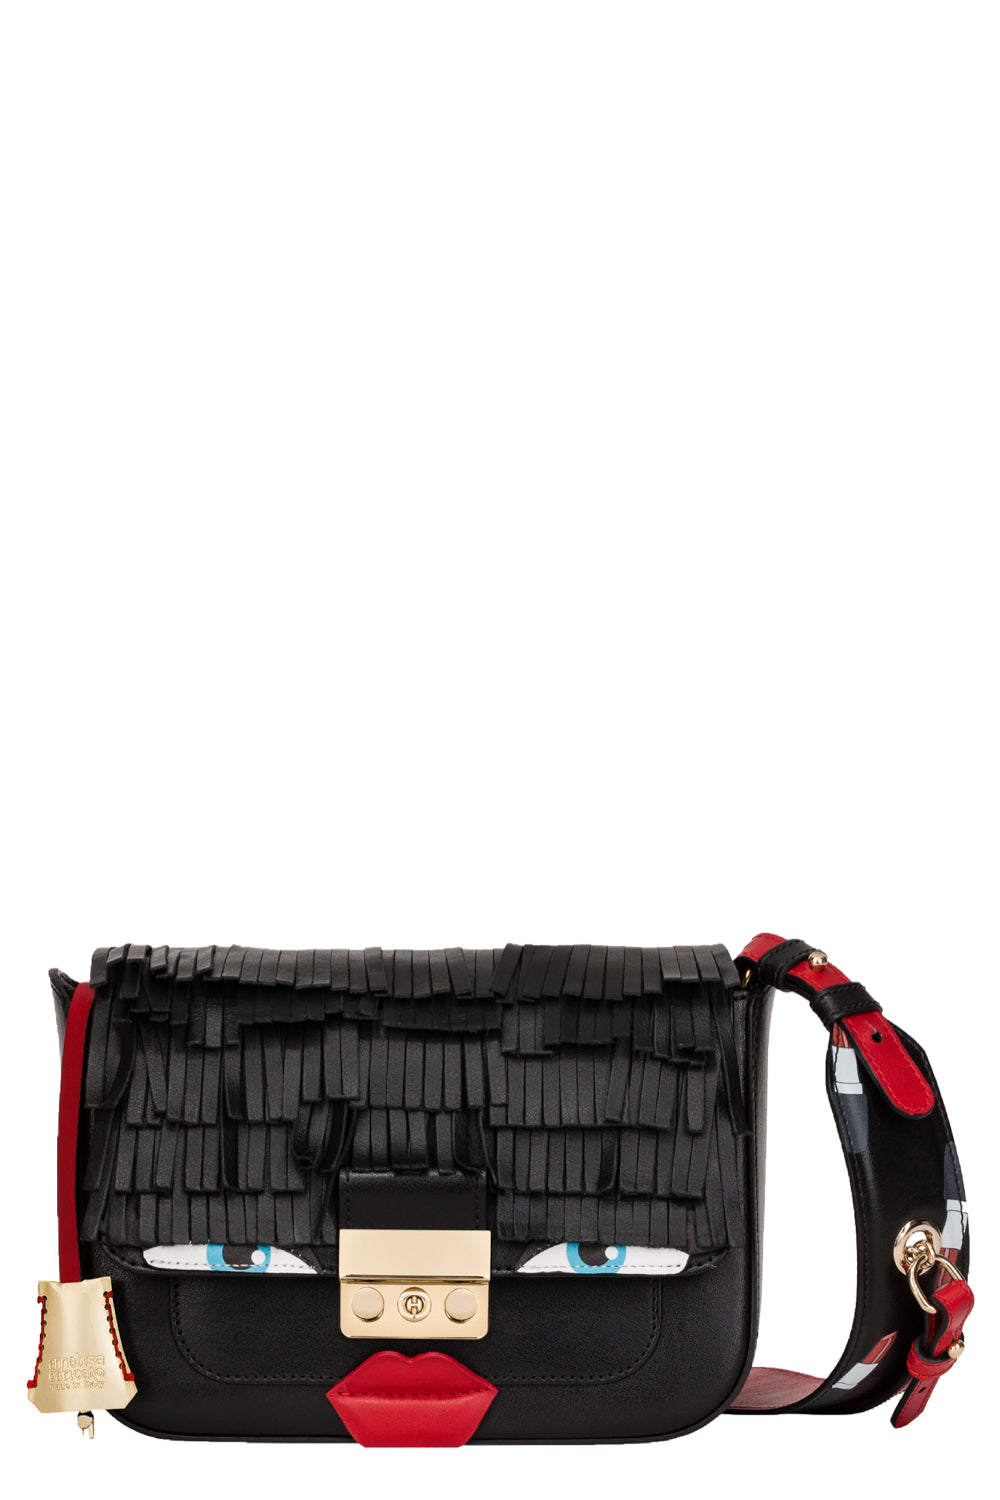 Silly Fringe Leather Mini Bag - The Bobby Boga